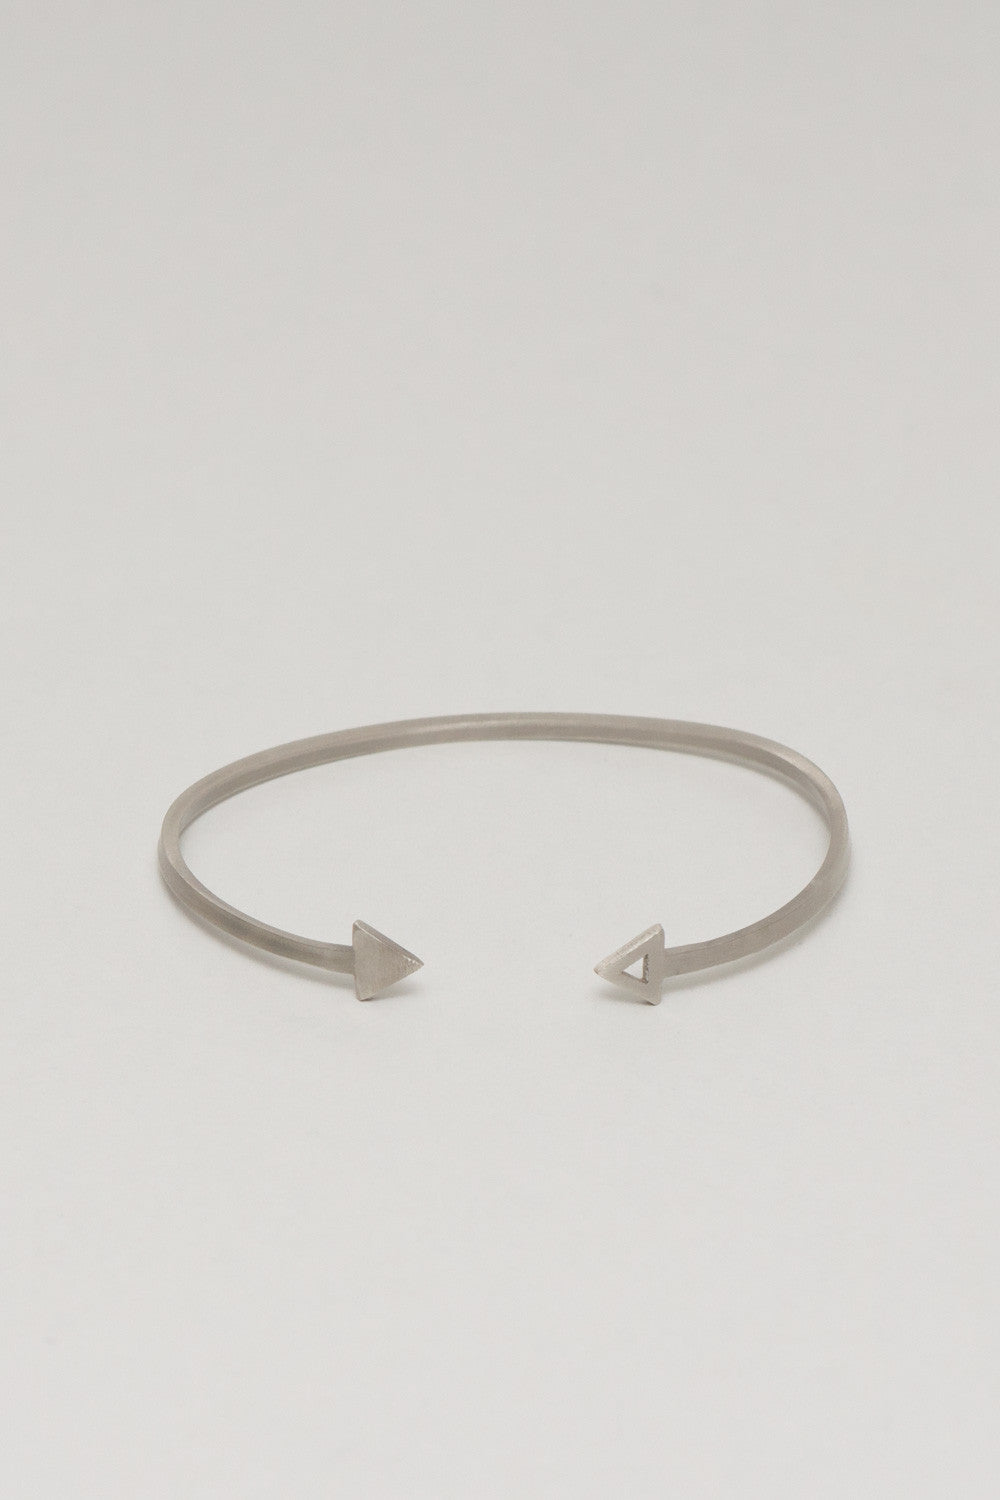 MARIA KARKANTZOU - ARROWS CUFF BRACELET - Jewellery - Ozon Boutique - 9